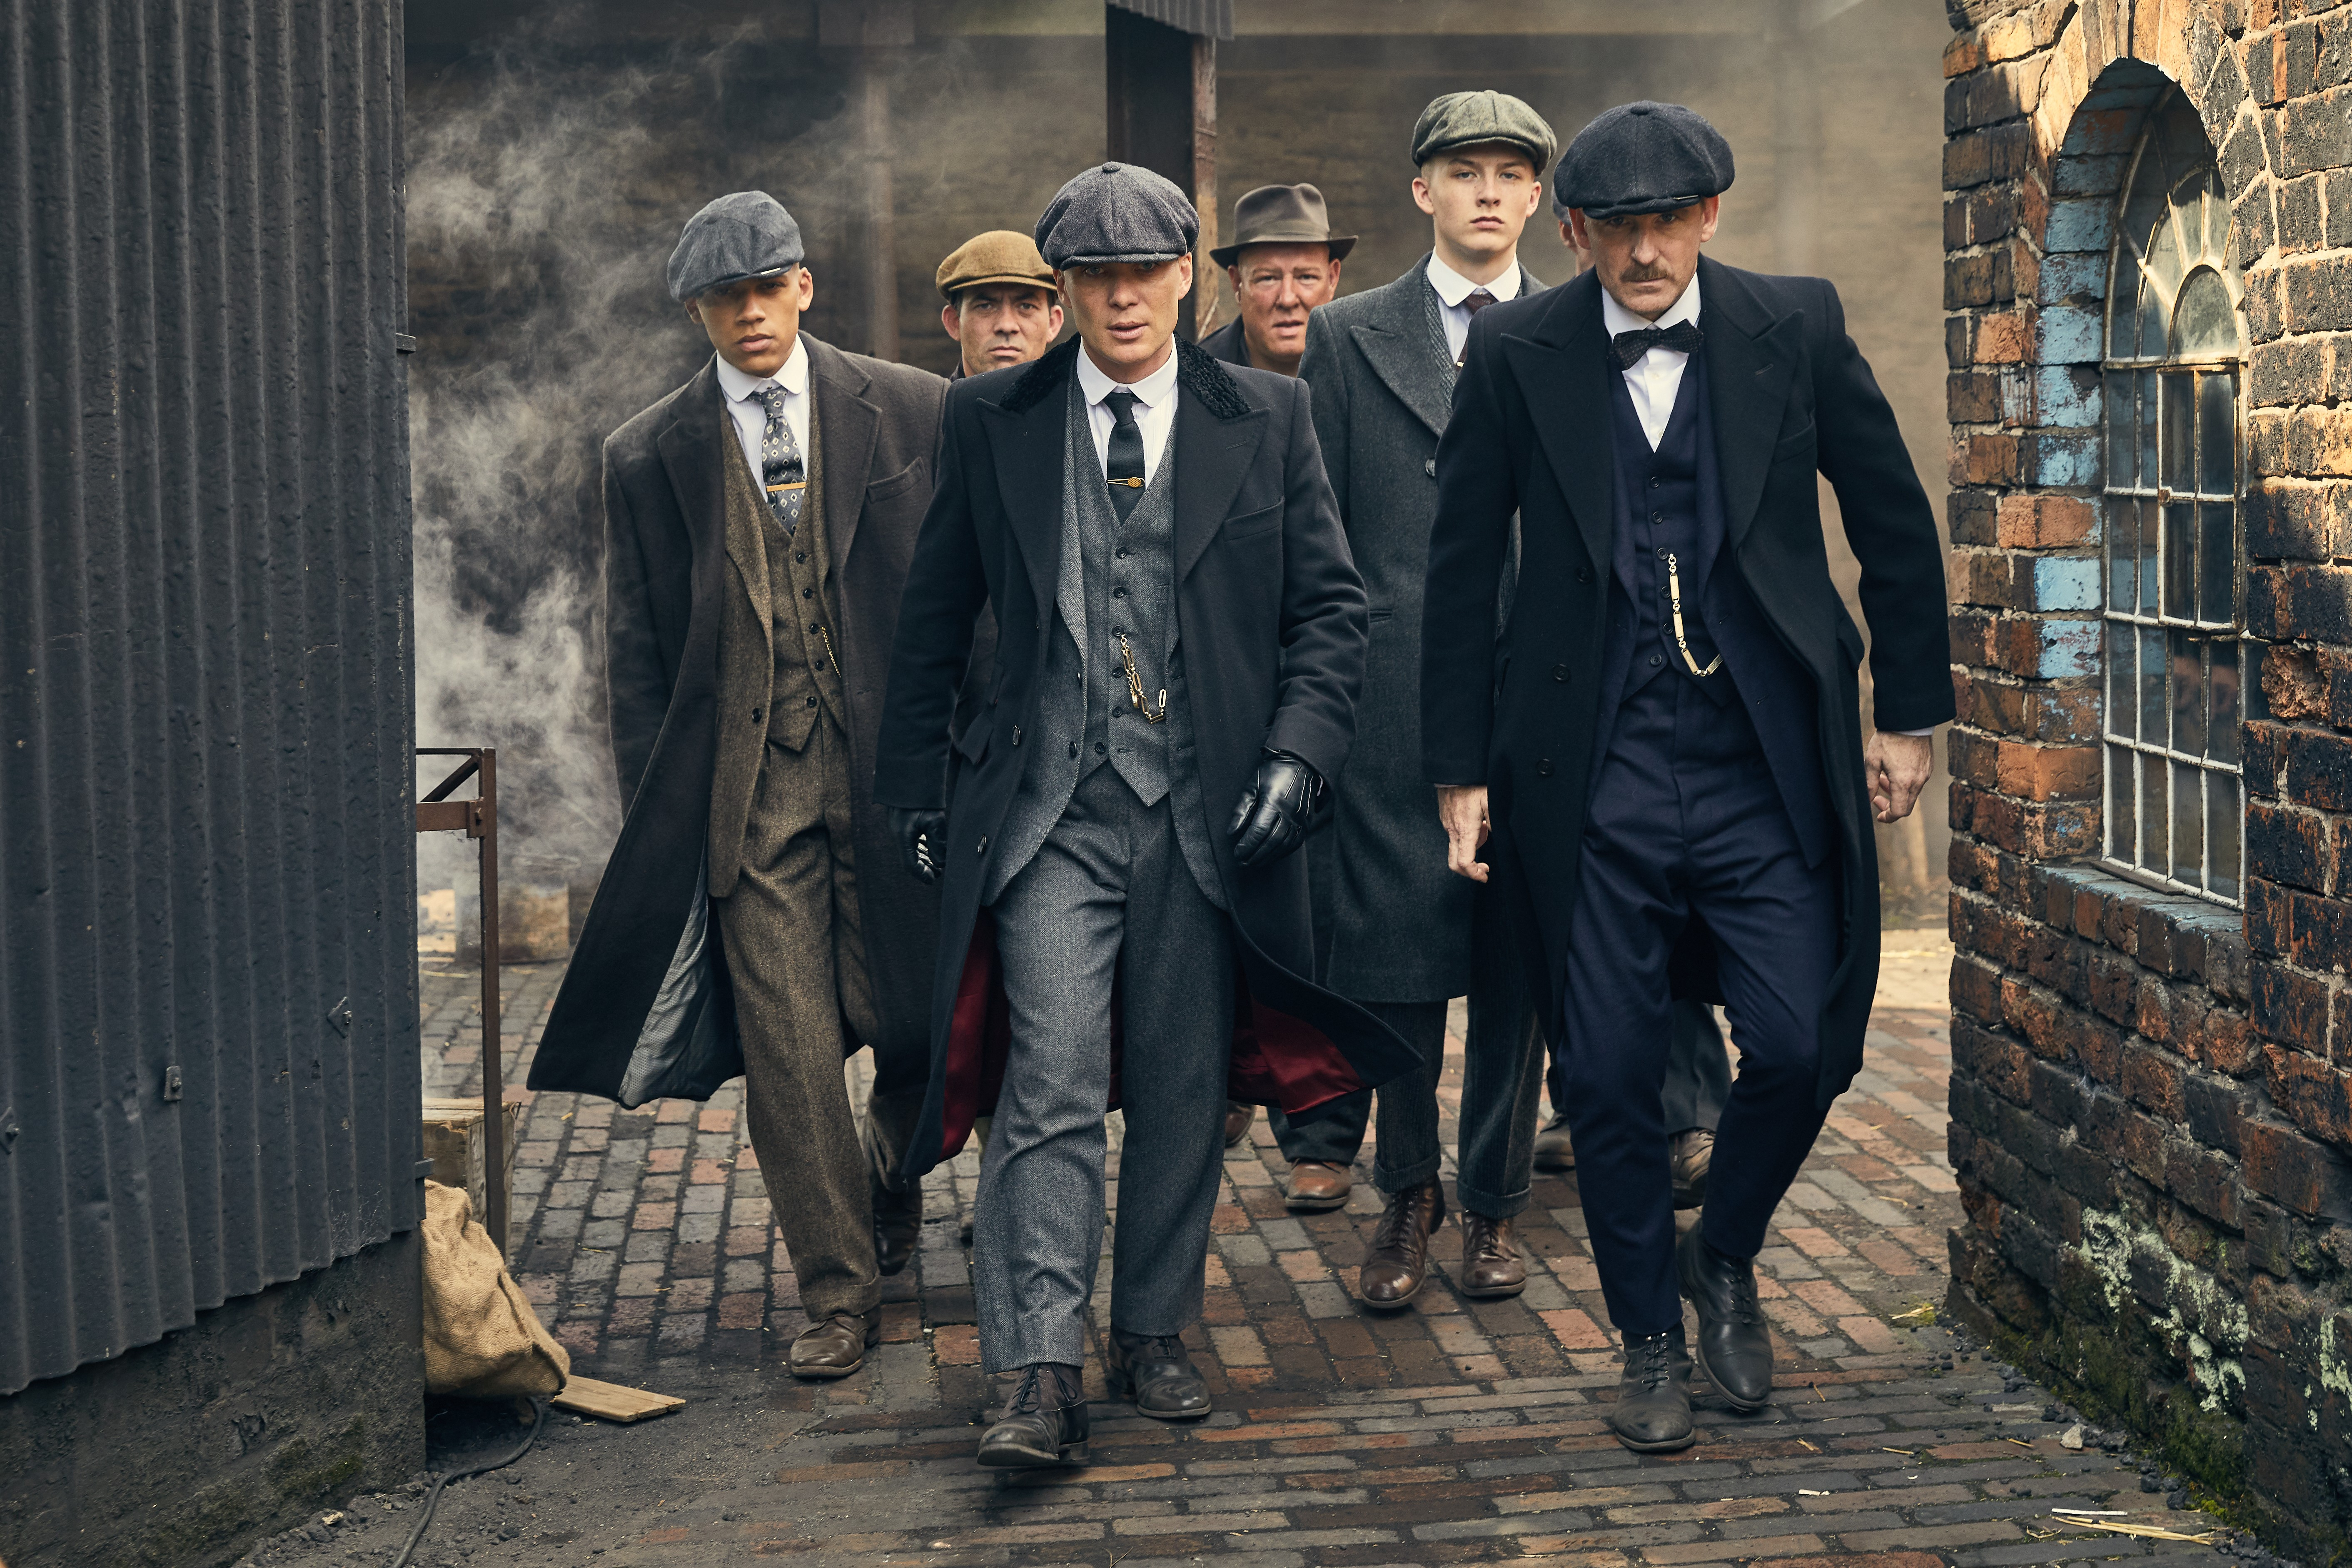 Thomas Shelby | Peaky Blinders Wiki | FANDOM powered by Wikia